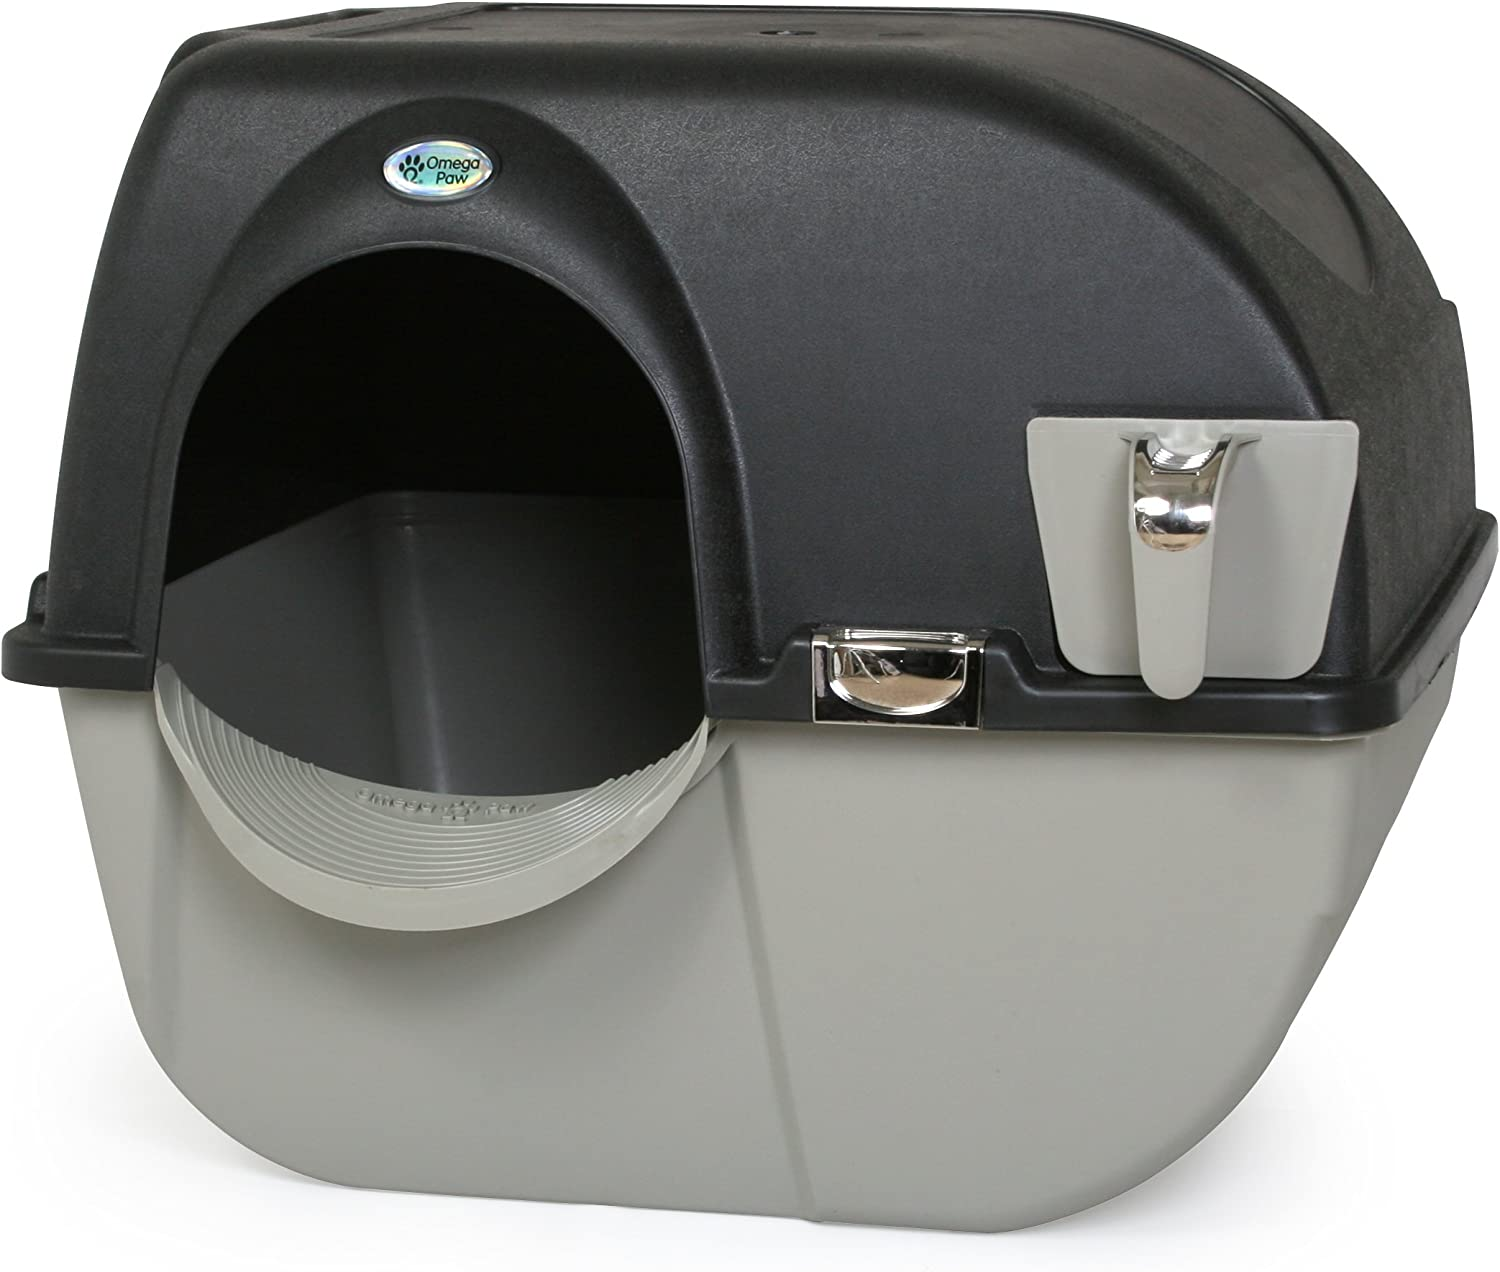 Top 10 Best Self Cleaning Litter Box For Large Cats [Updated December 2020] 3